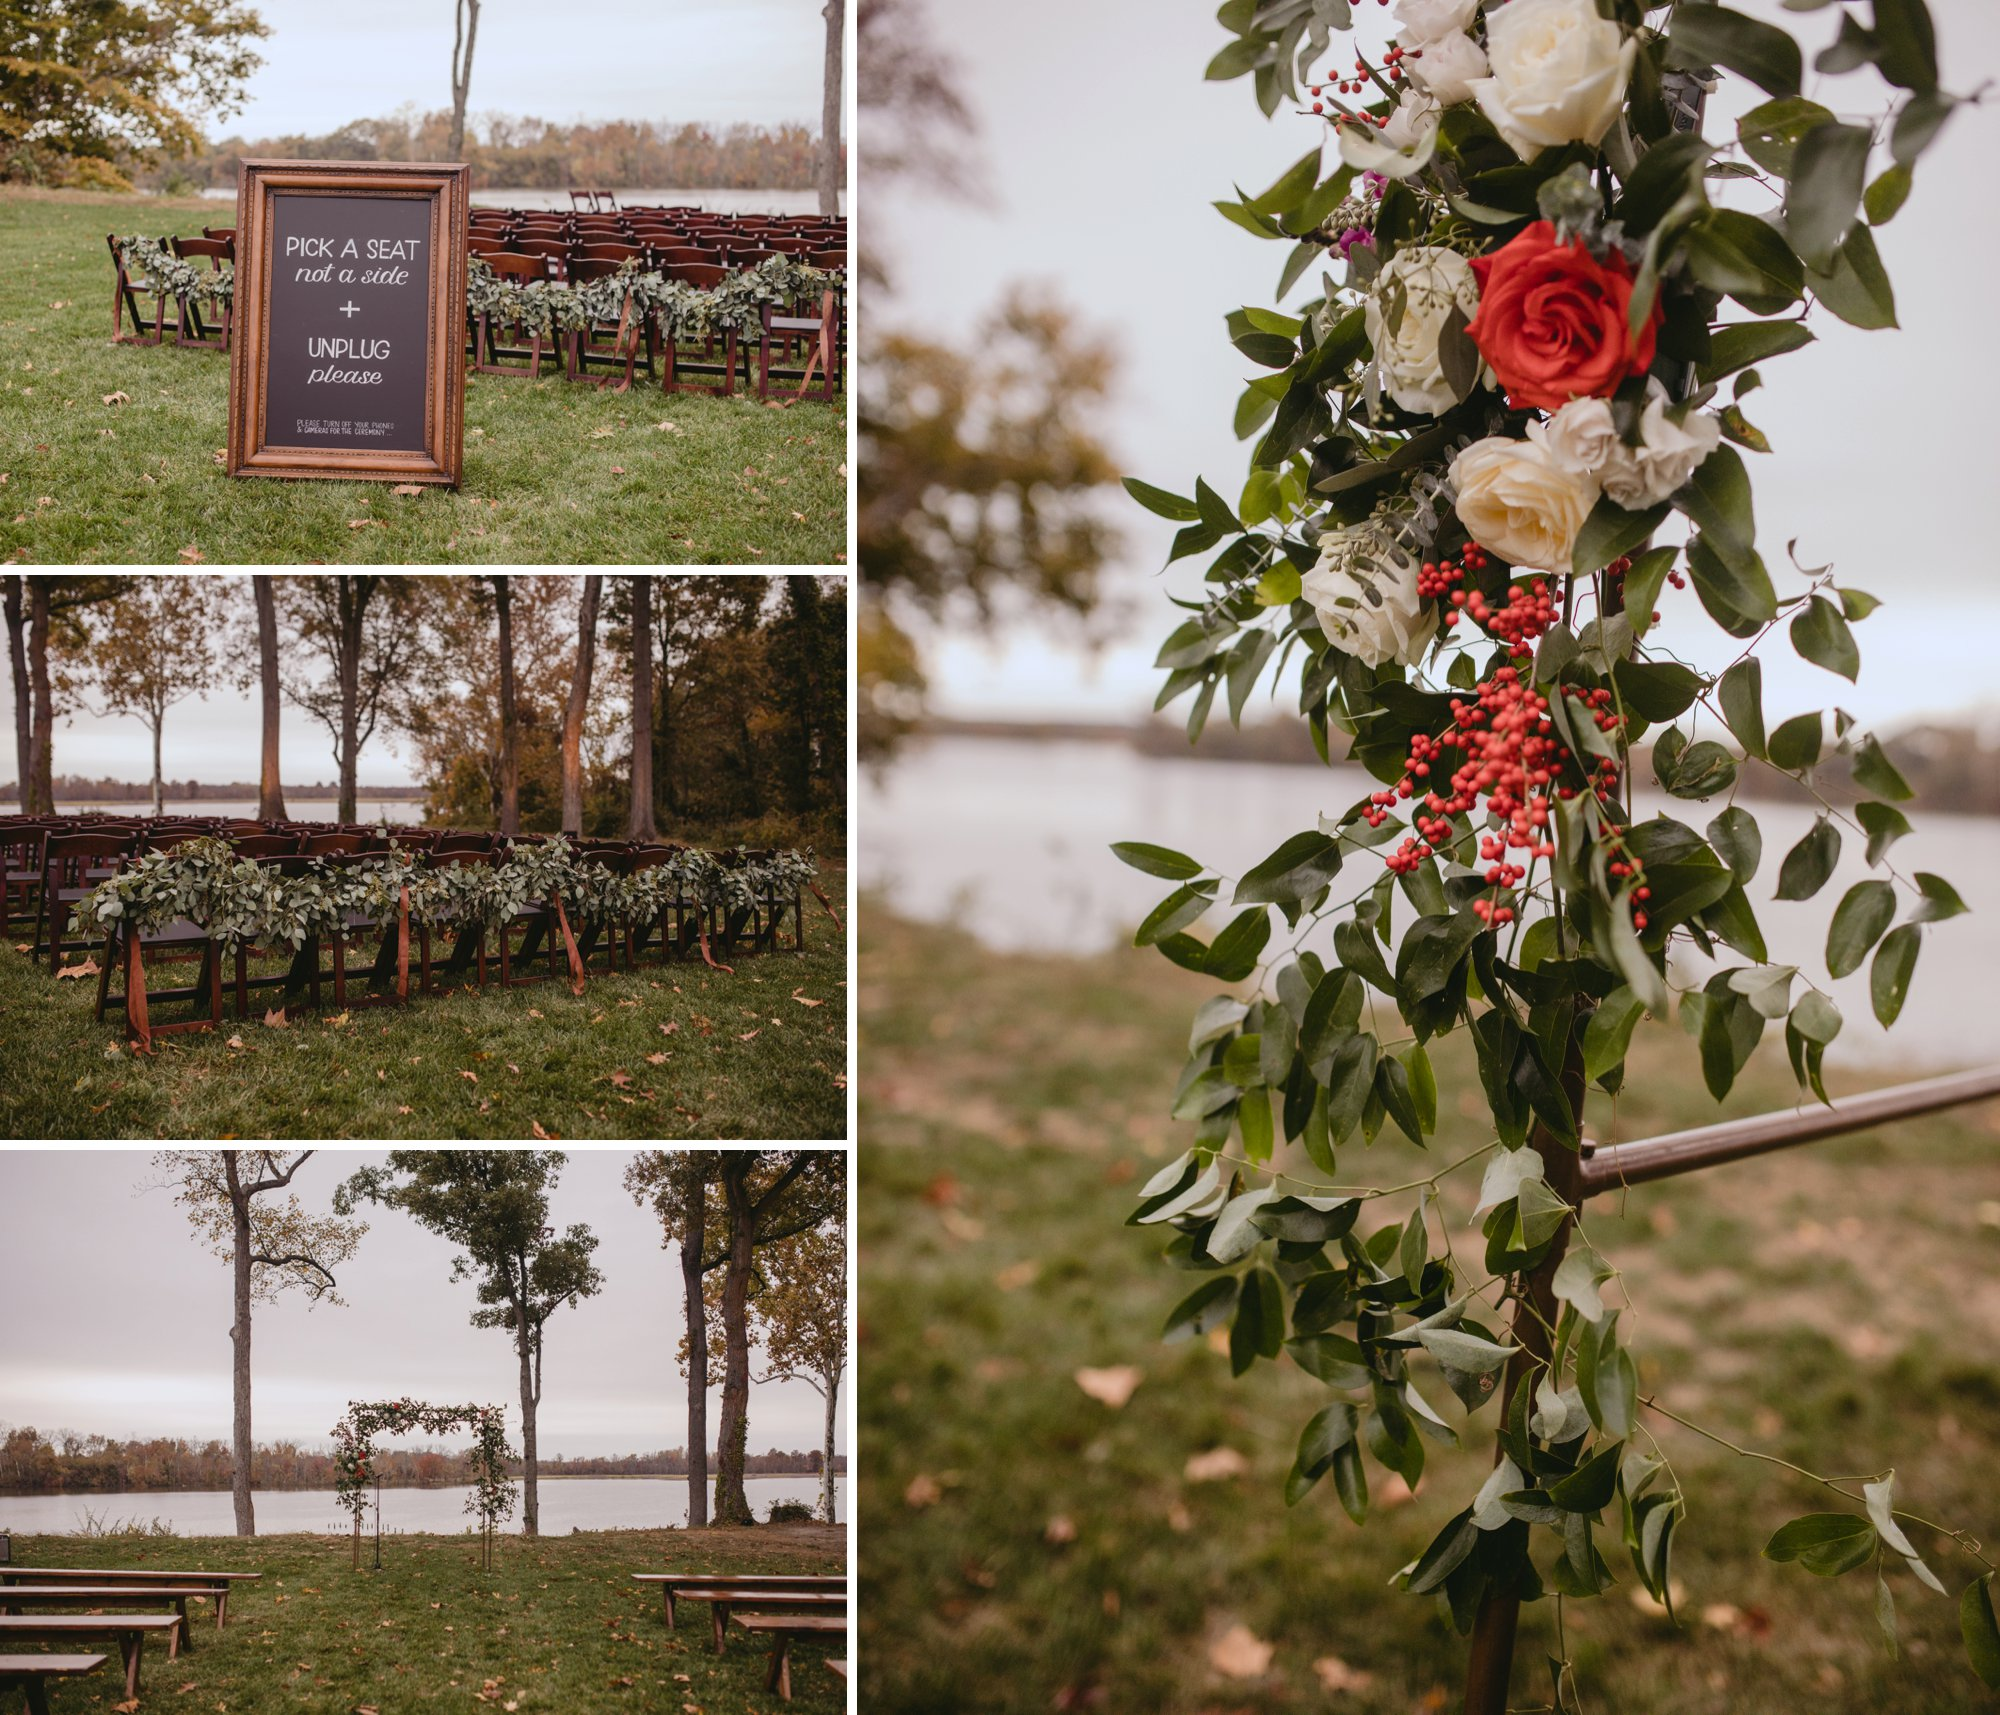 Autumn Richmond VA winery wedding at Upper Shirley Vineyards with lush garden florals and old Hollywood glamour ceremony details